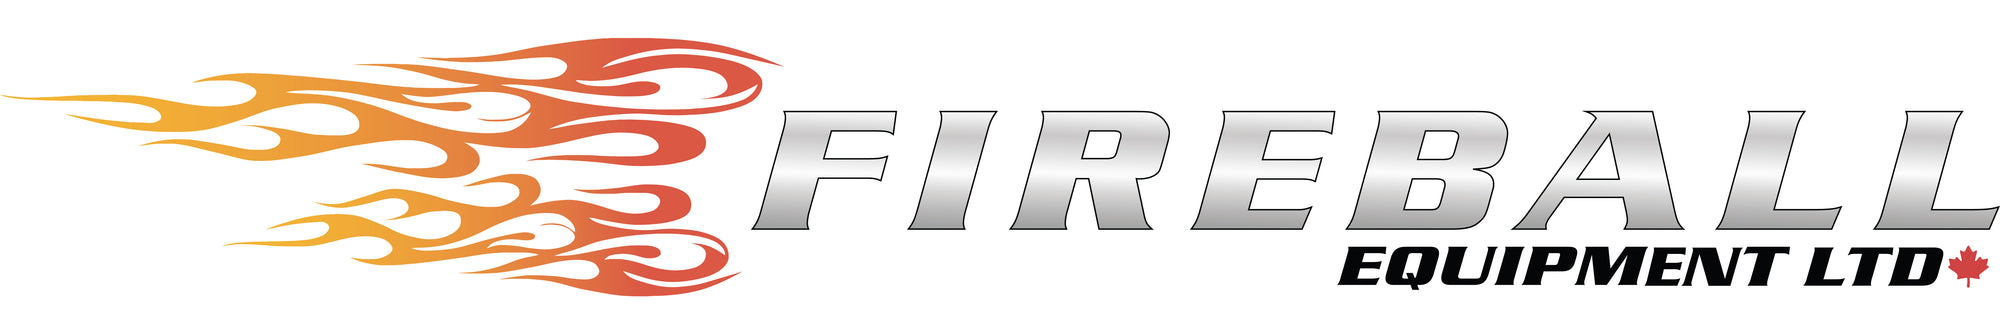 Fireball Equipment Ltd. announces Liam Murphy as President